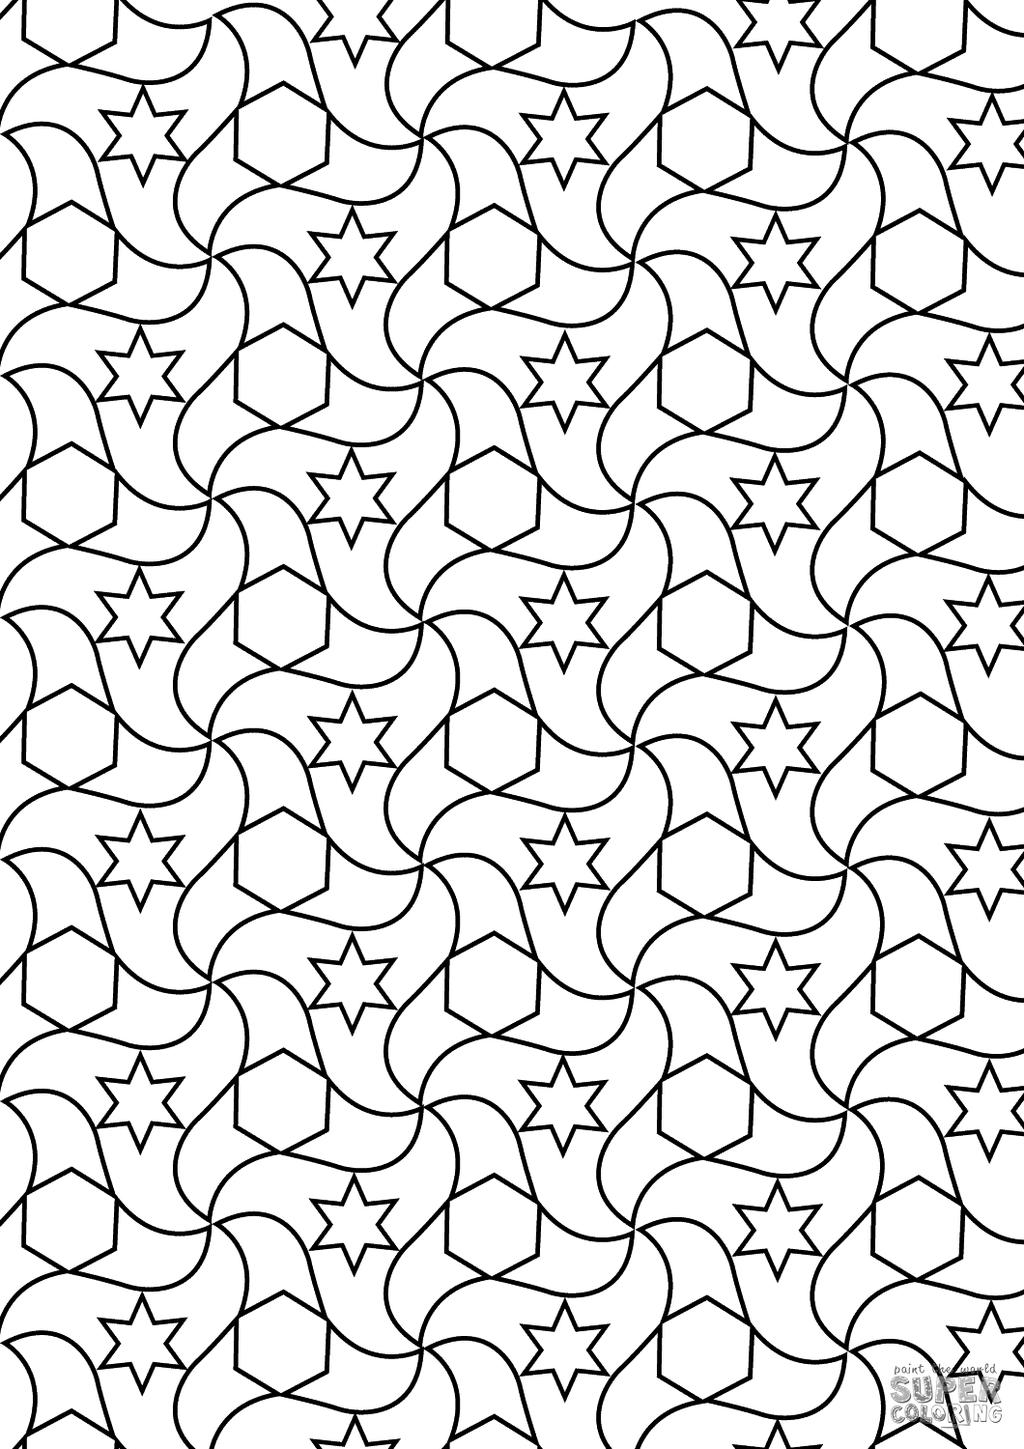 Free Islamic Art Coloring Pages Alhambra Tessellations printable